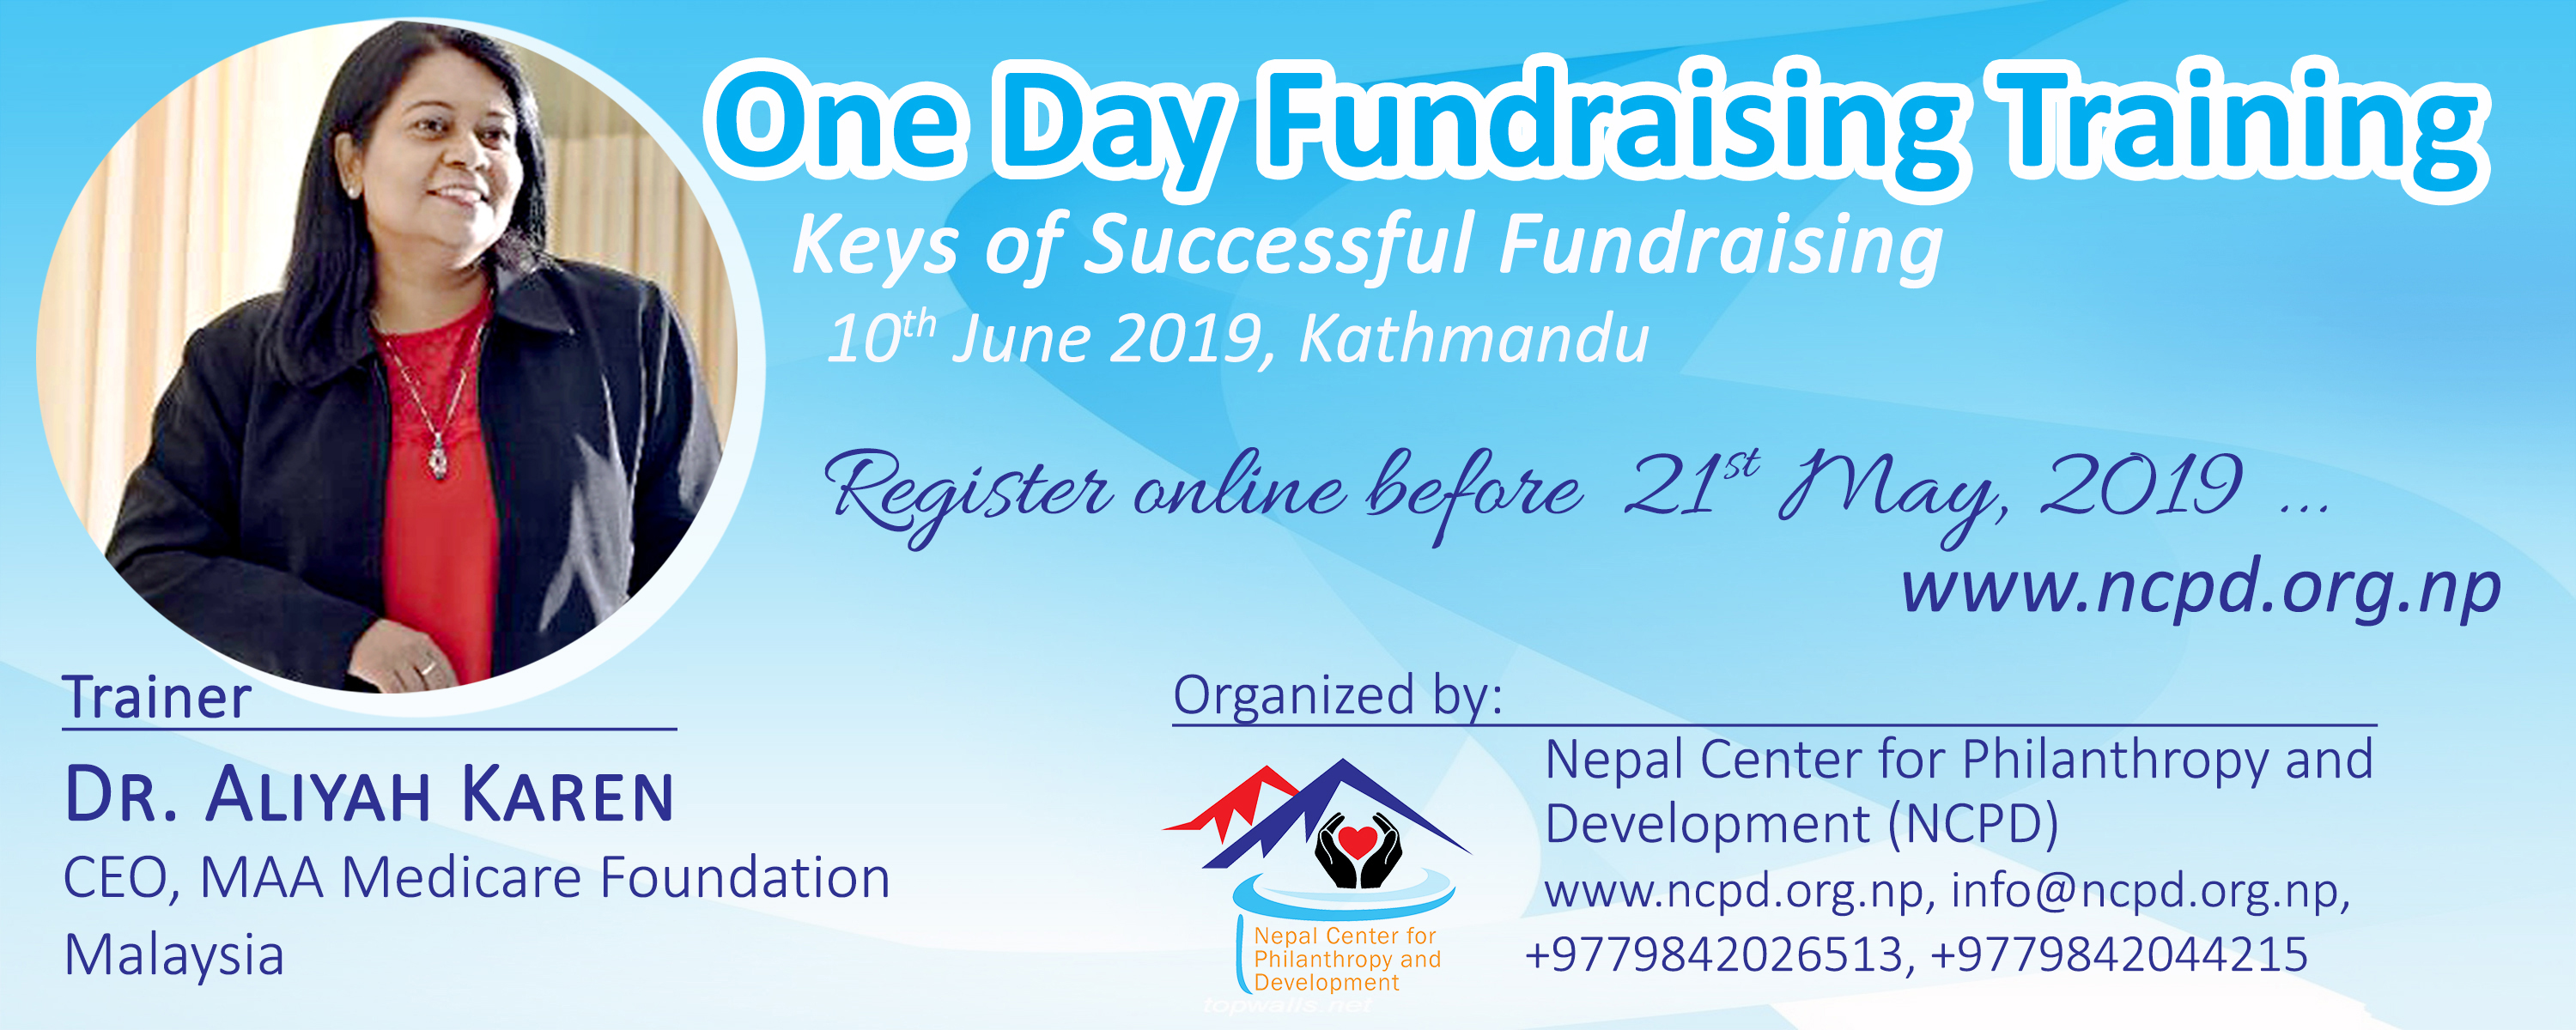 Nepal Center for Philanthropy and Development event banner